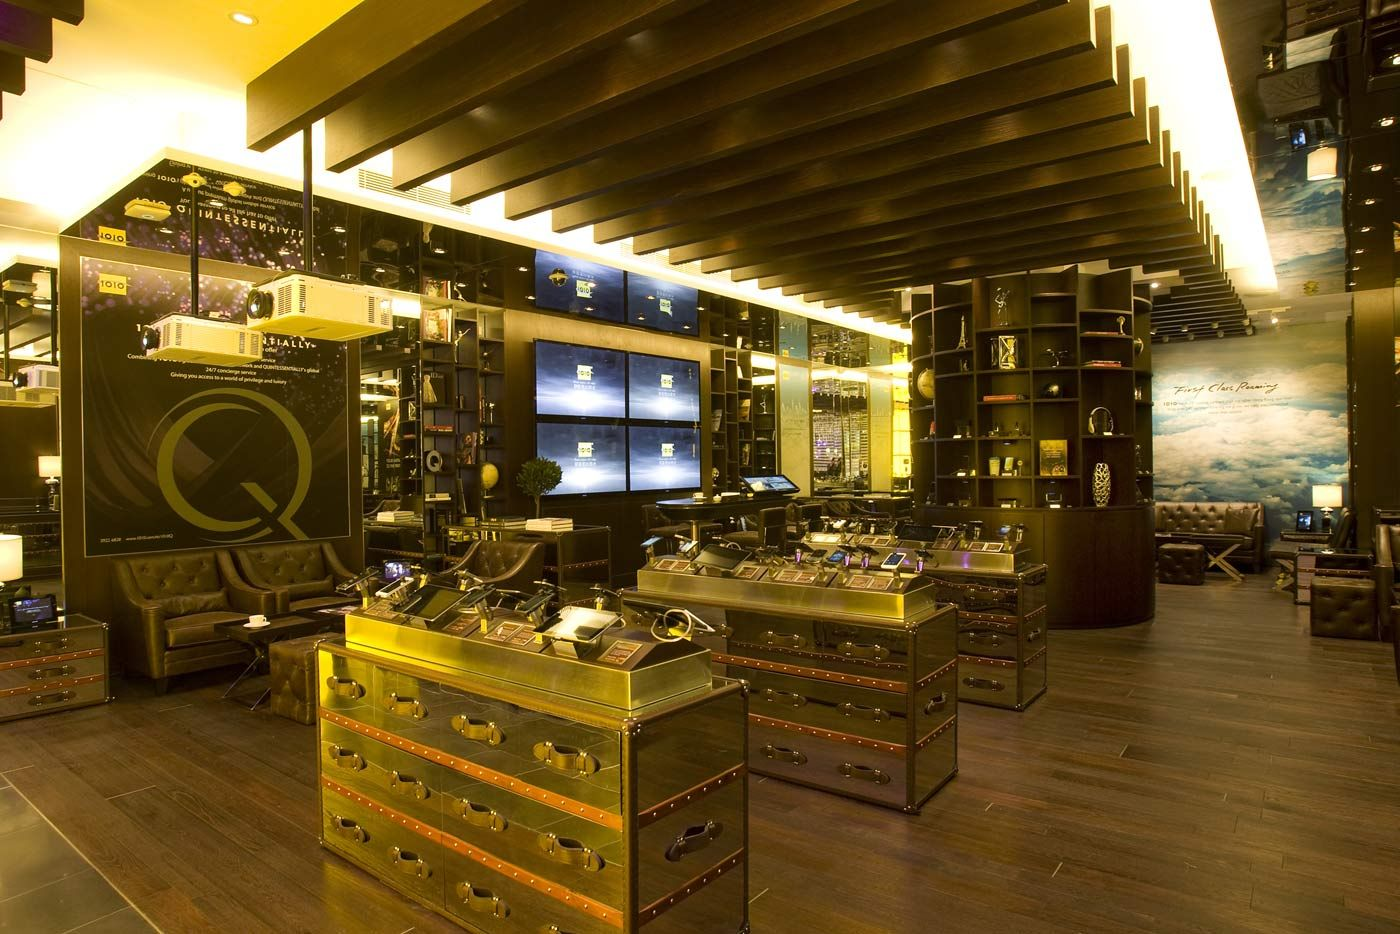 luxury brand experience - Google Search